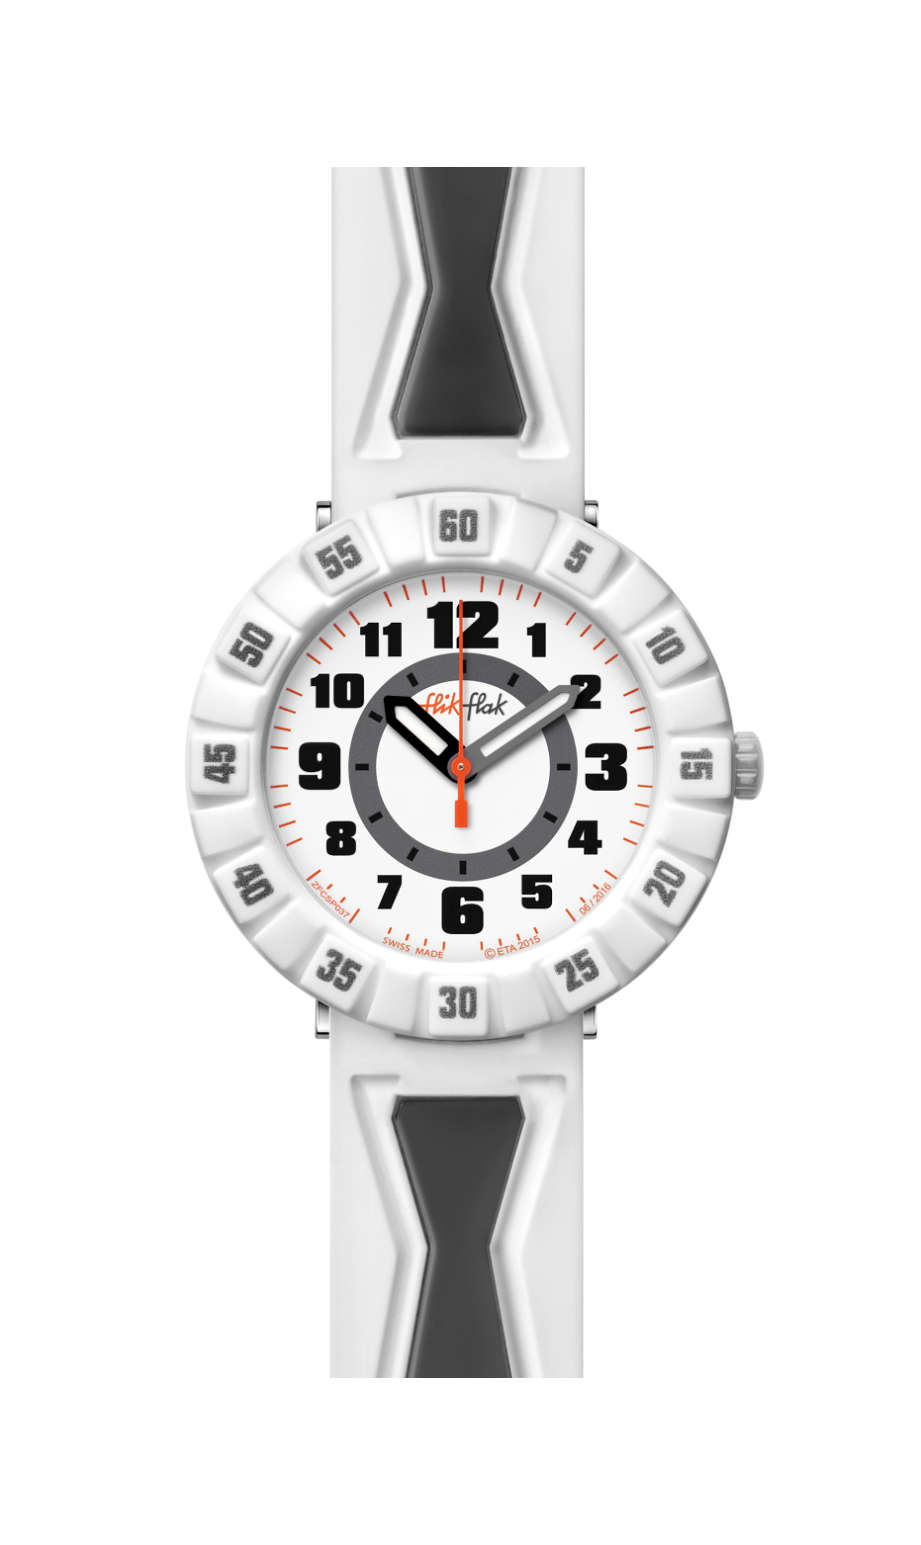 Swatch - GET IT IN GREY - 1